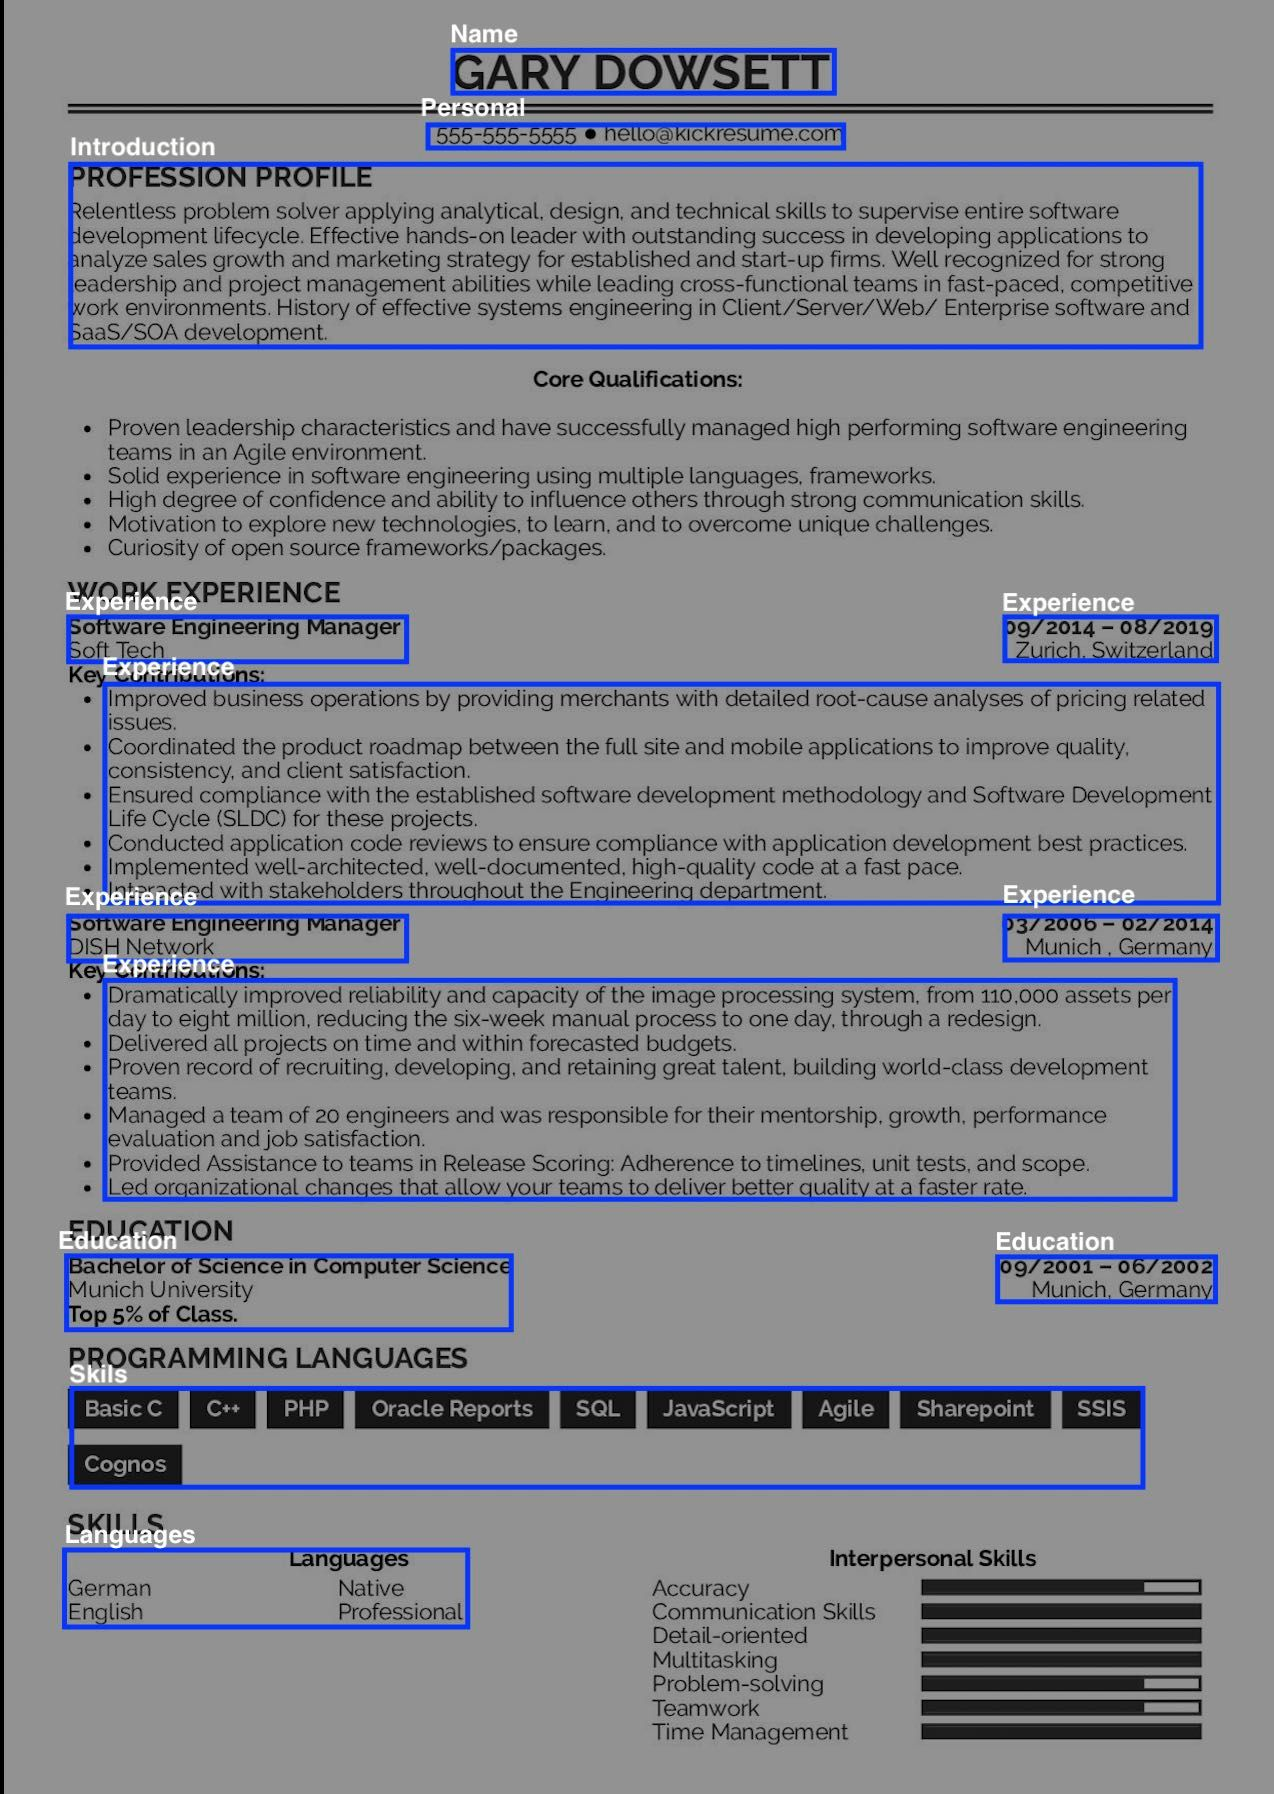 How to OCR Resumes using Intelligent Automation